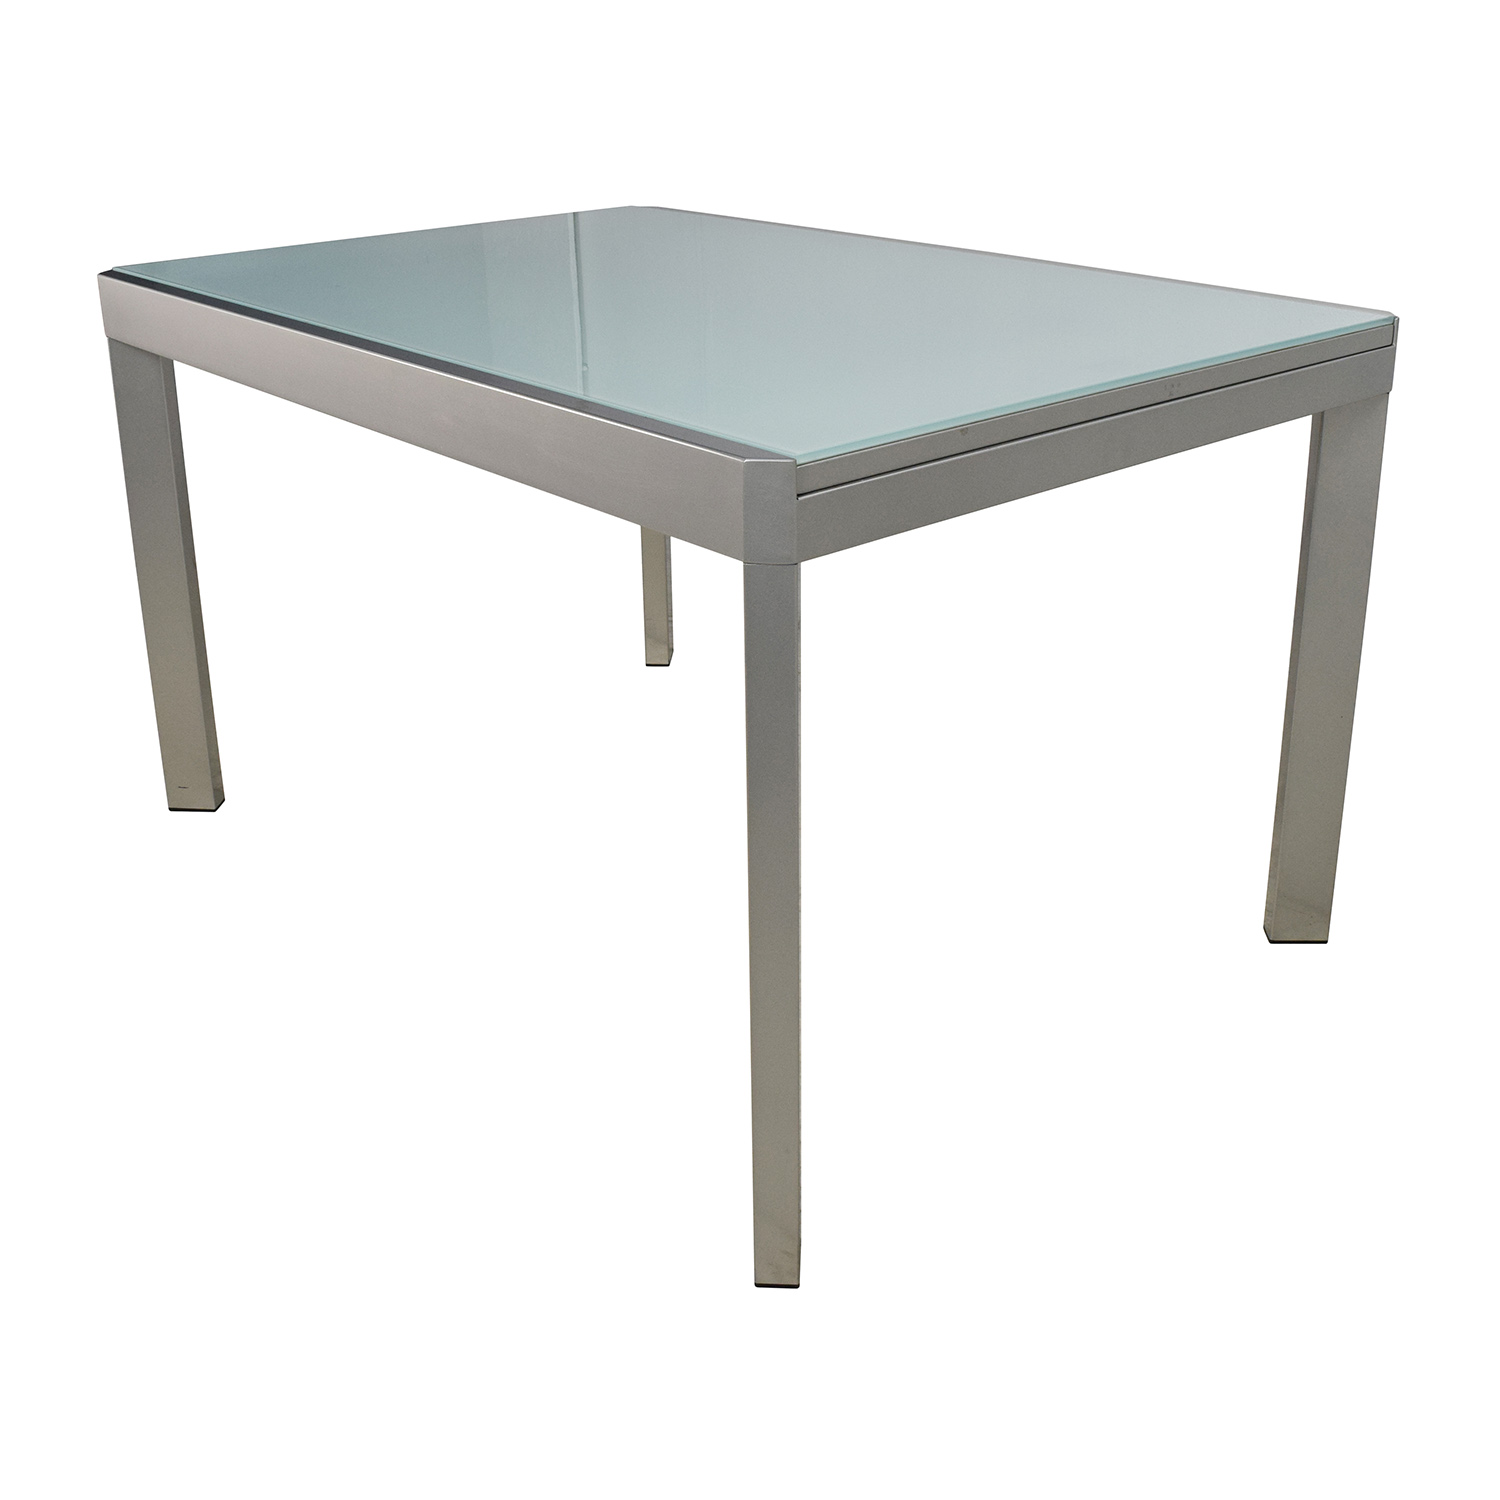 86 off calligaris calligaris extendable glass dining for Extendable dining table